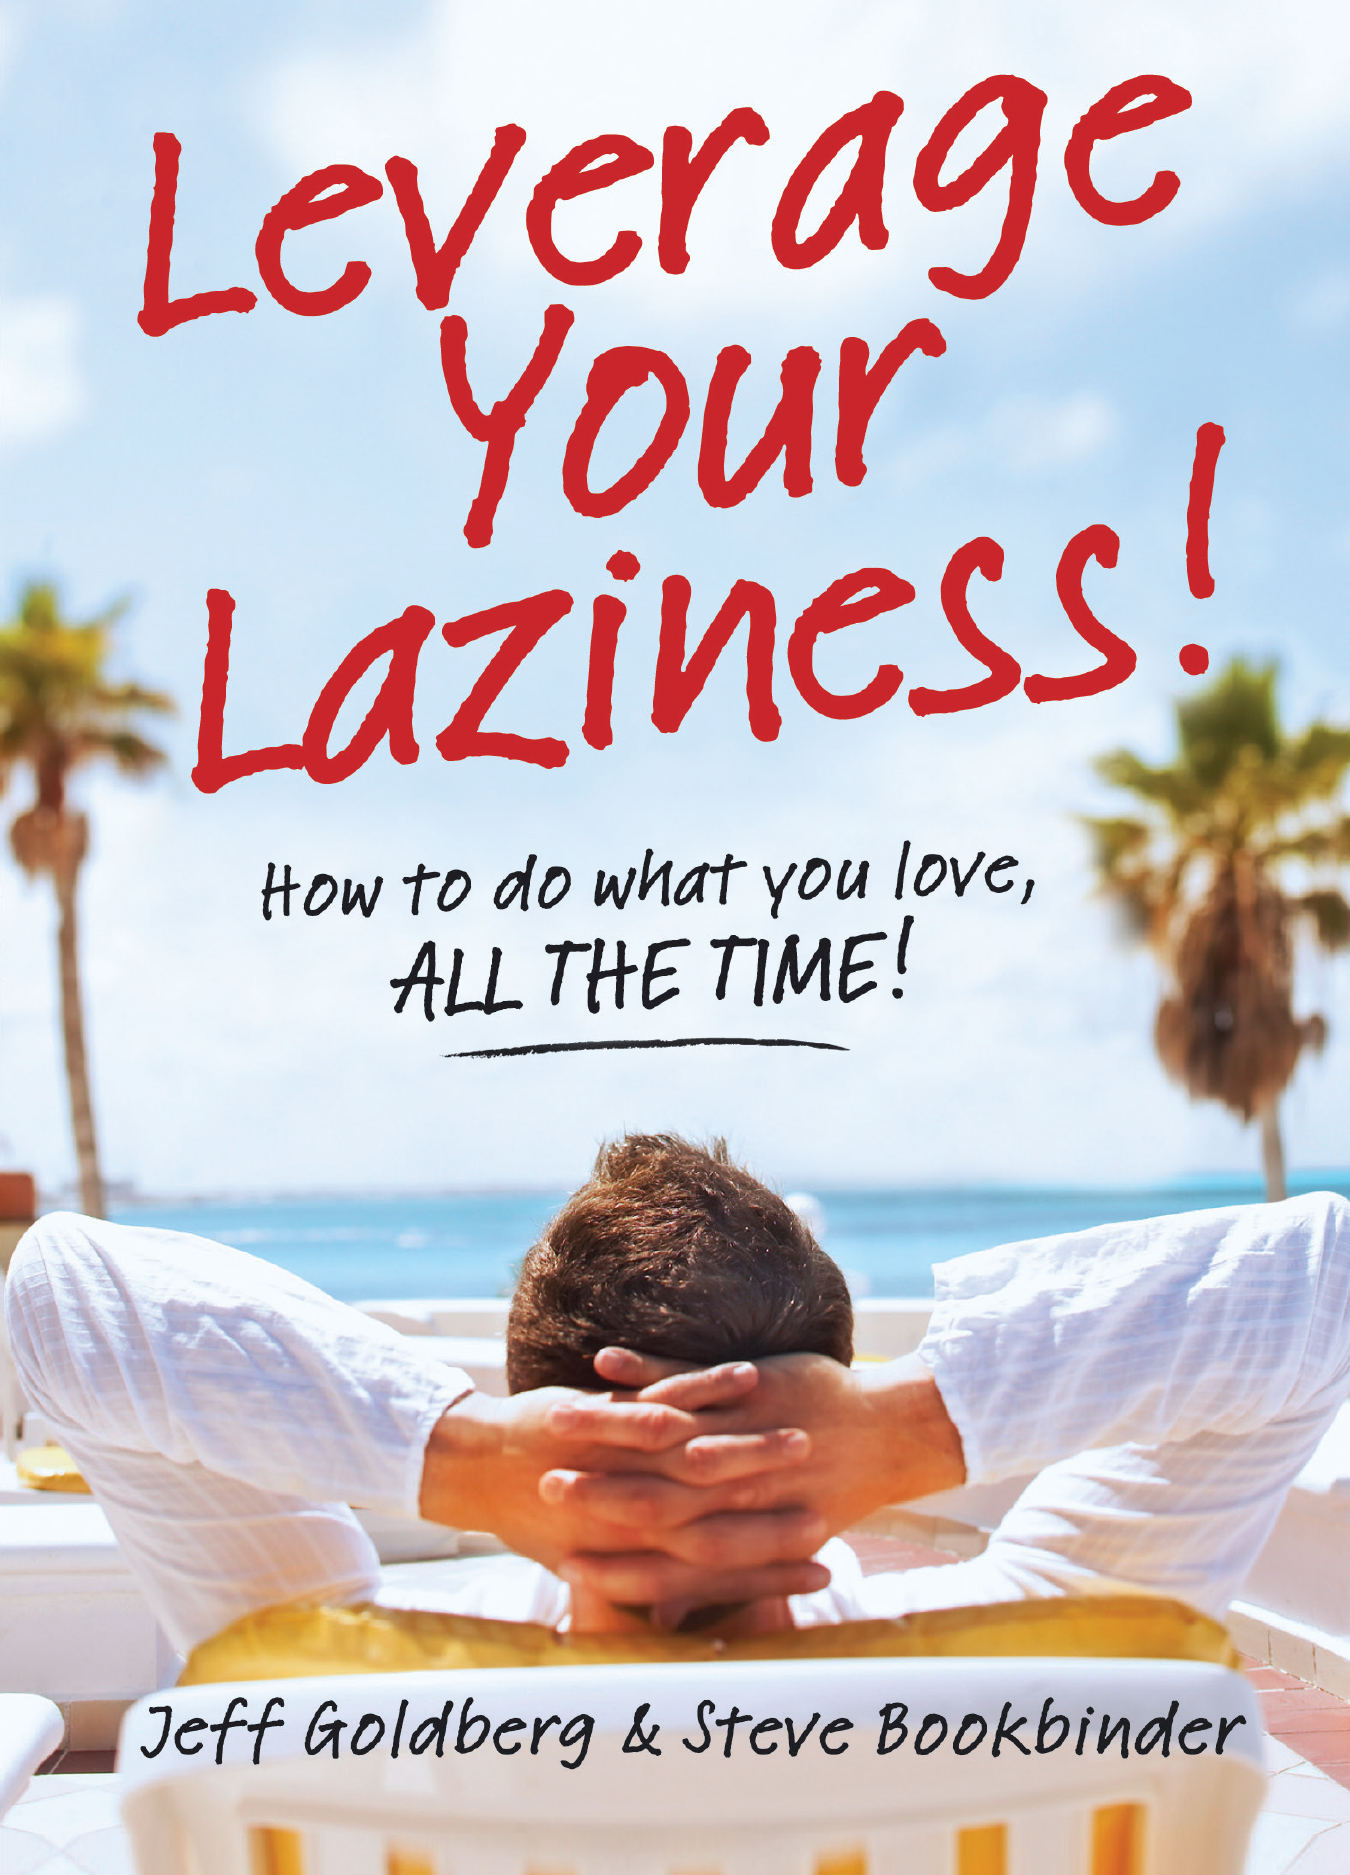 Leverage Your Laziness - By jeff goldberg & steve bookbinder